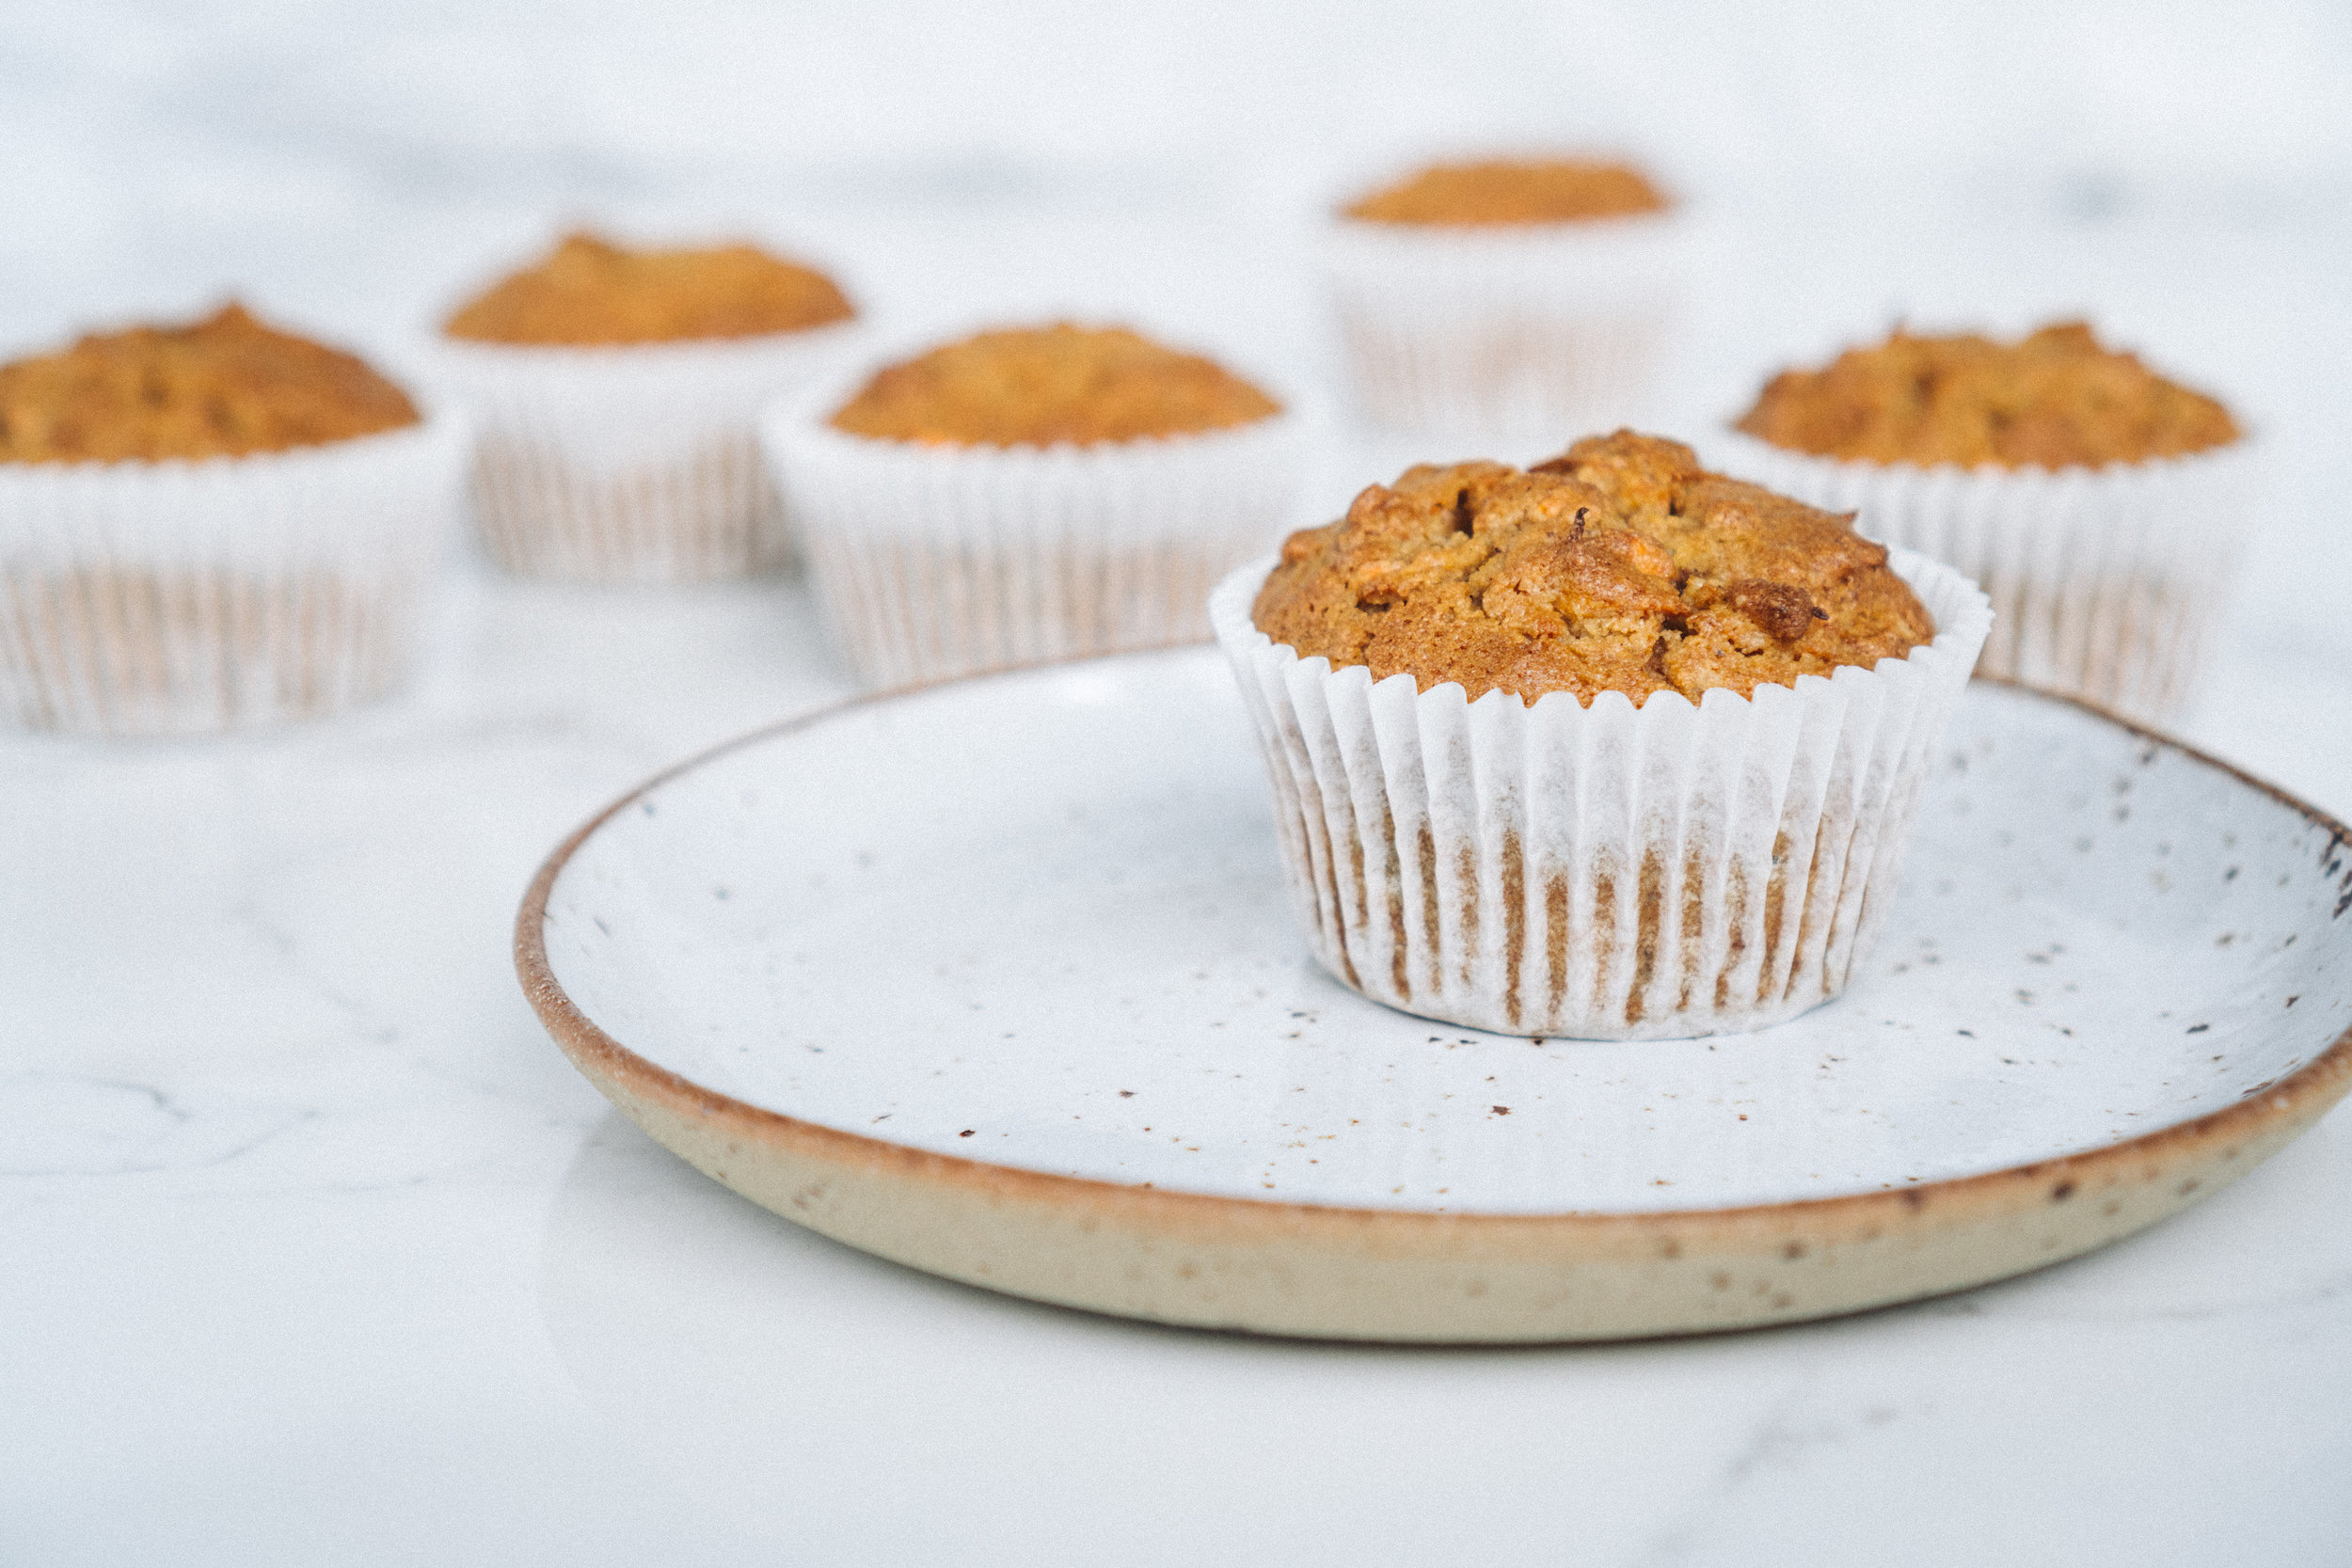 DID YOU BAKE THESE? - Let me know what you think about these GF & dairy free muffins if you make 'em:you can leave a comment below or tag @kitchen.julie #kitchenjulie on instagram.I'd love to hear your thoughts and share insights on the recipe. Happy baking!xx, Julie